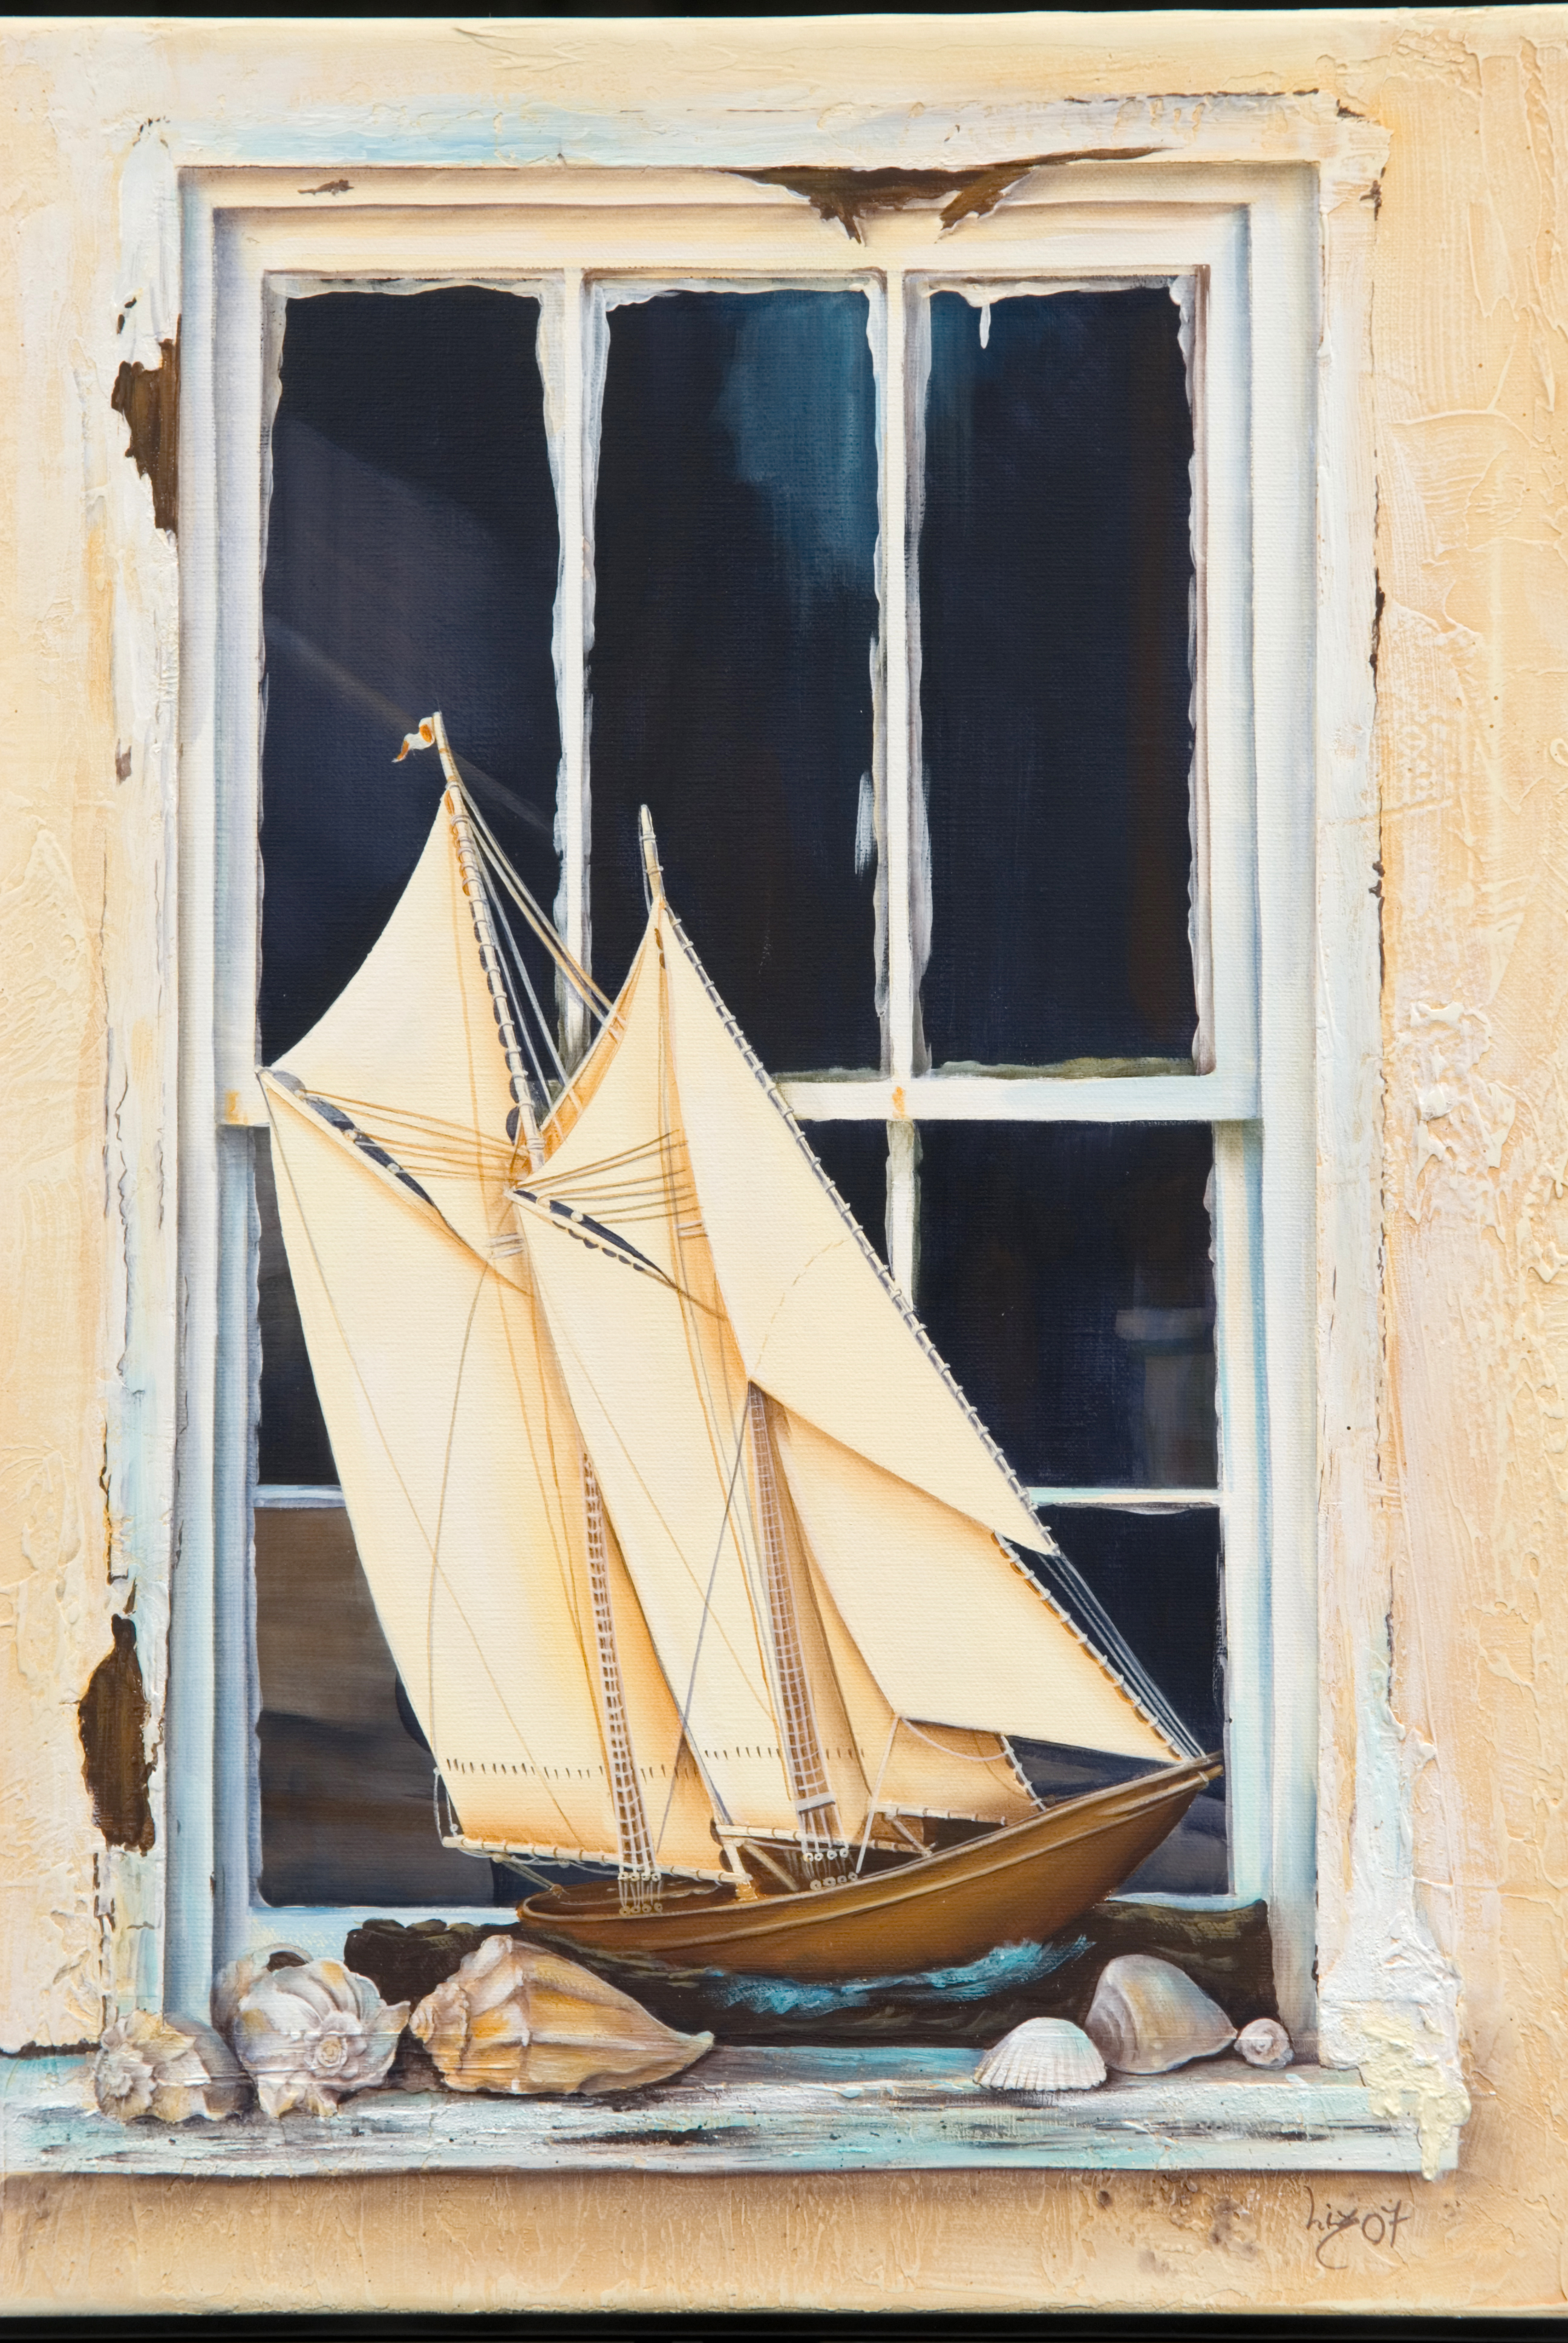 Sailboat in the Window